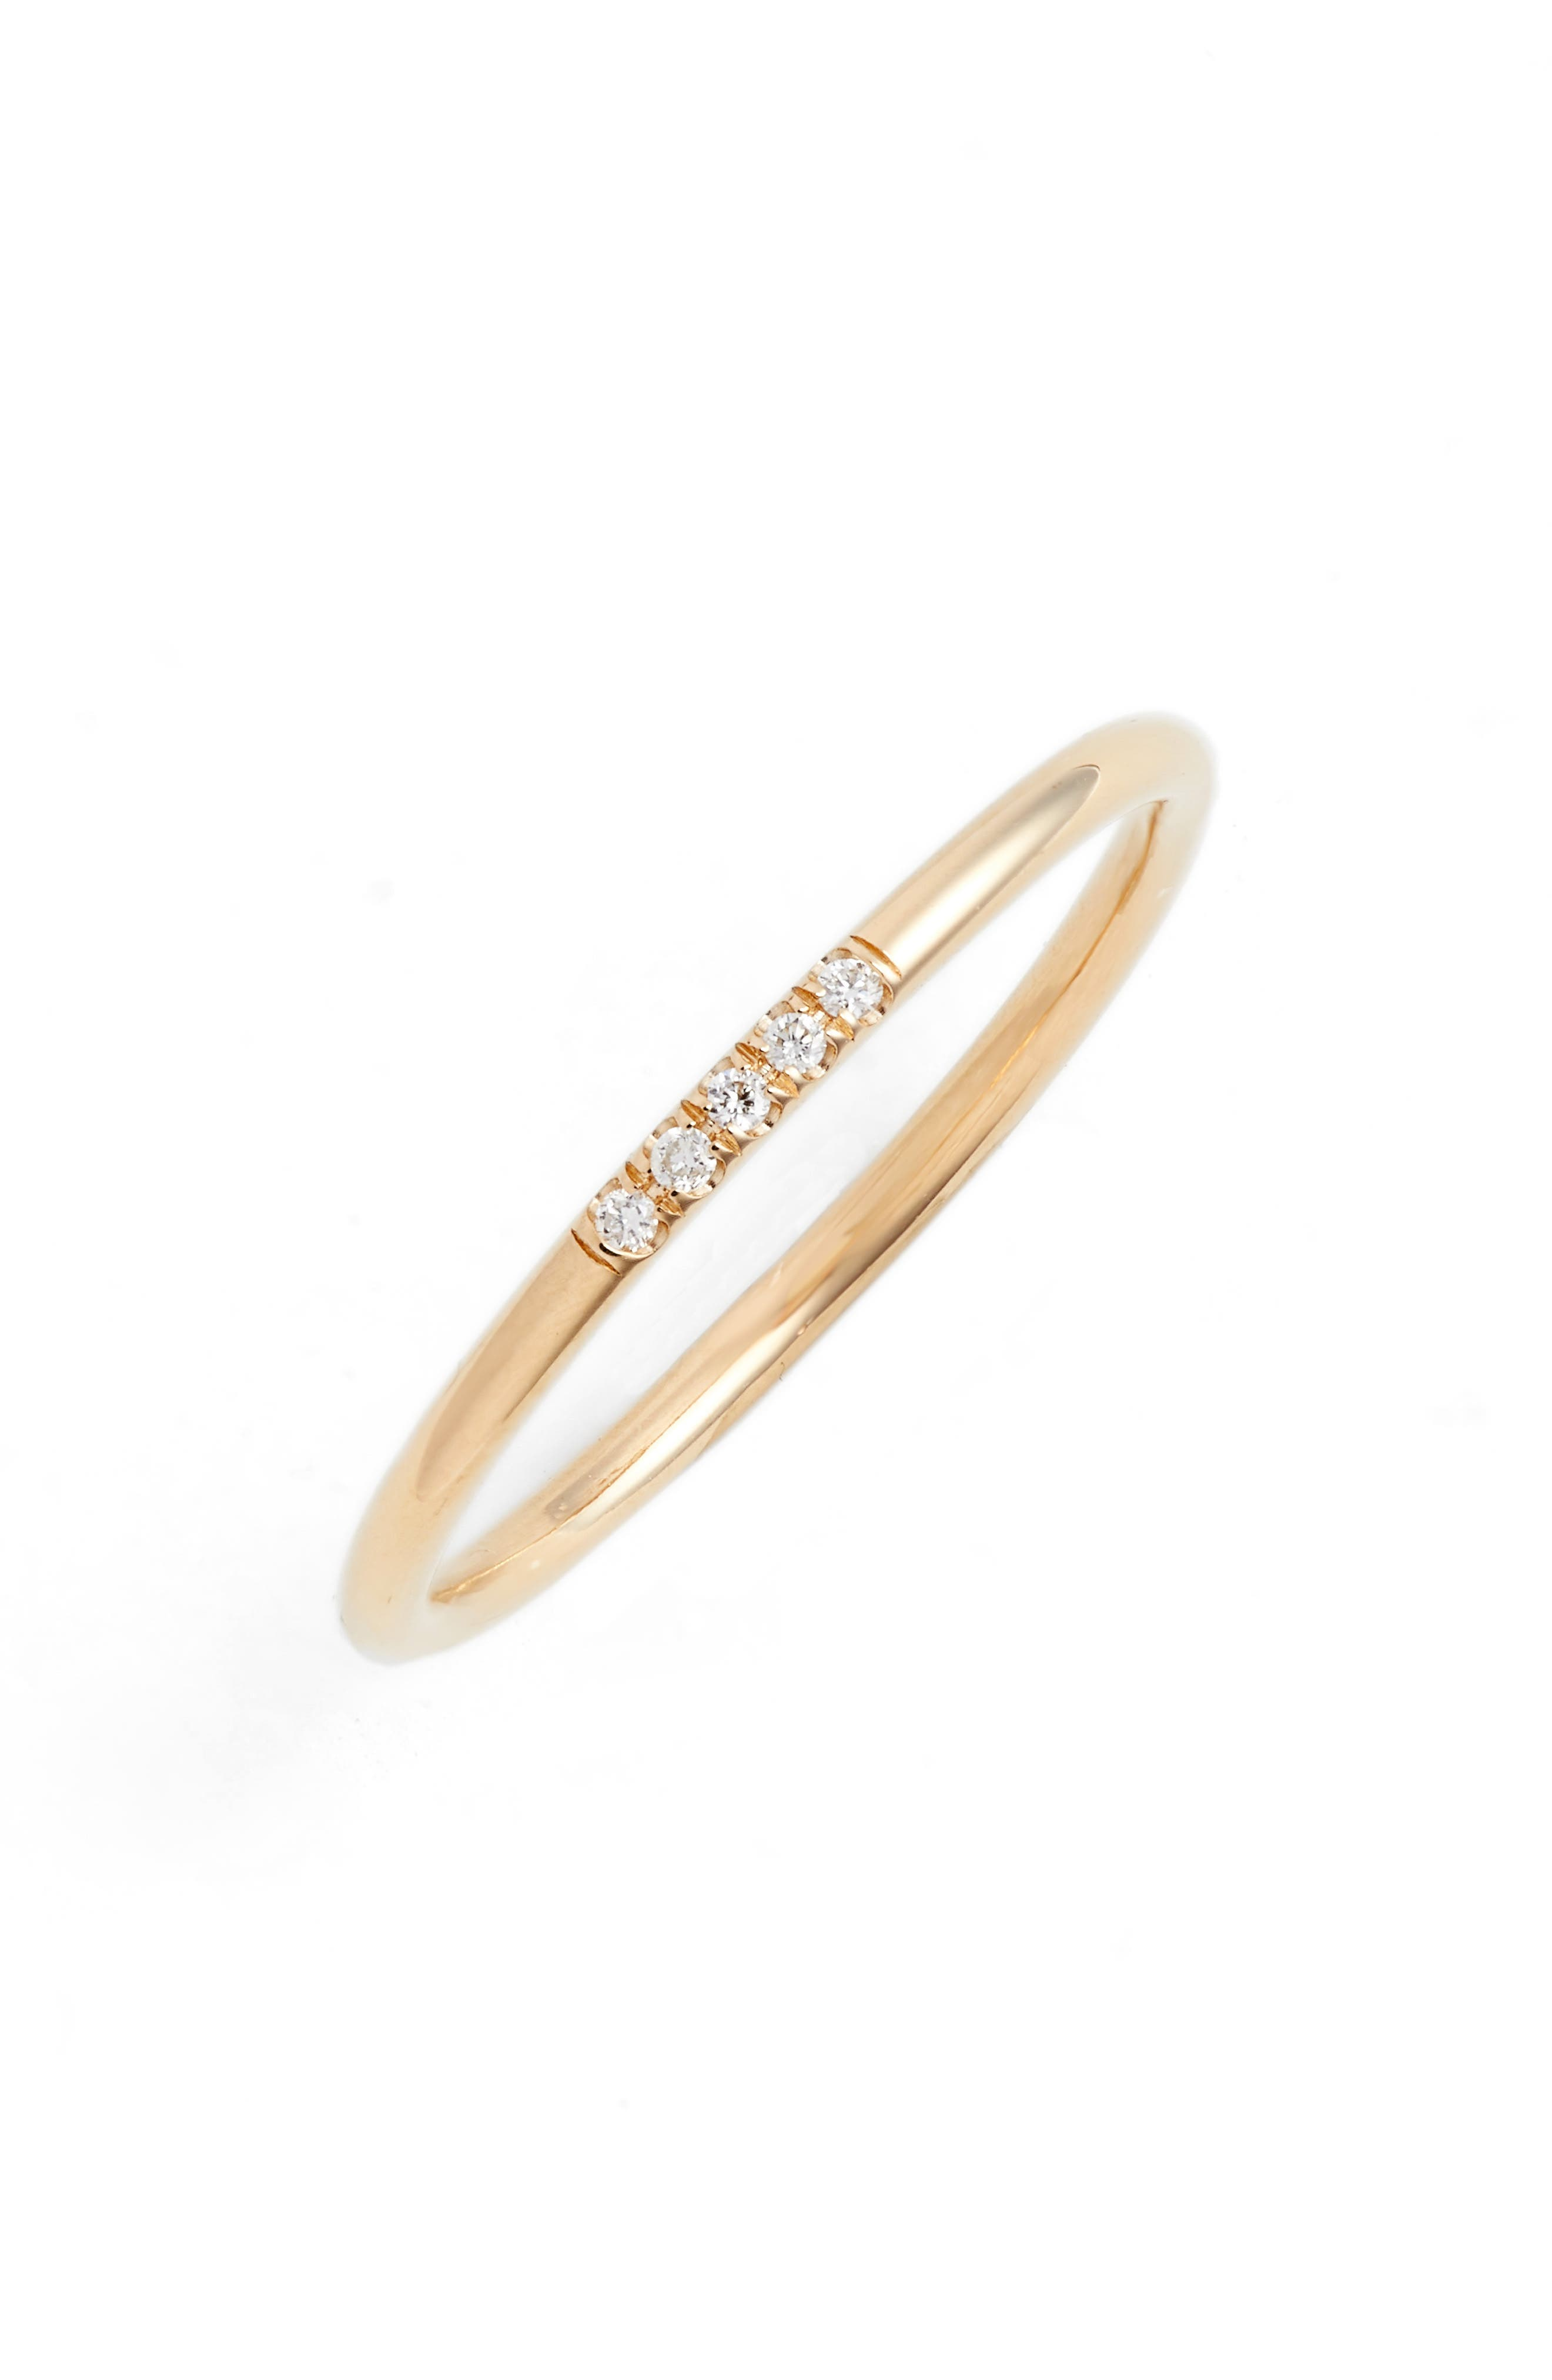 Zoë Chicco French Pavé Diamond Stacking Ring